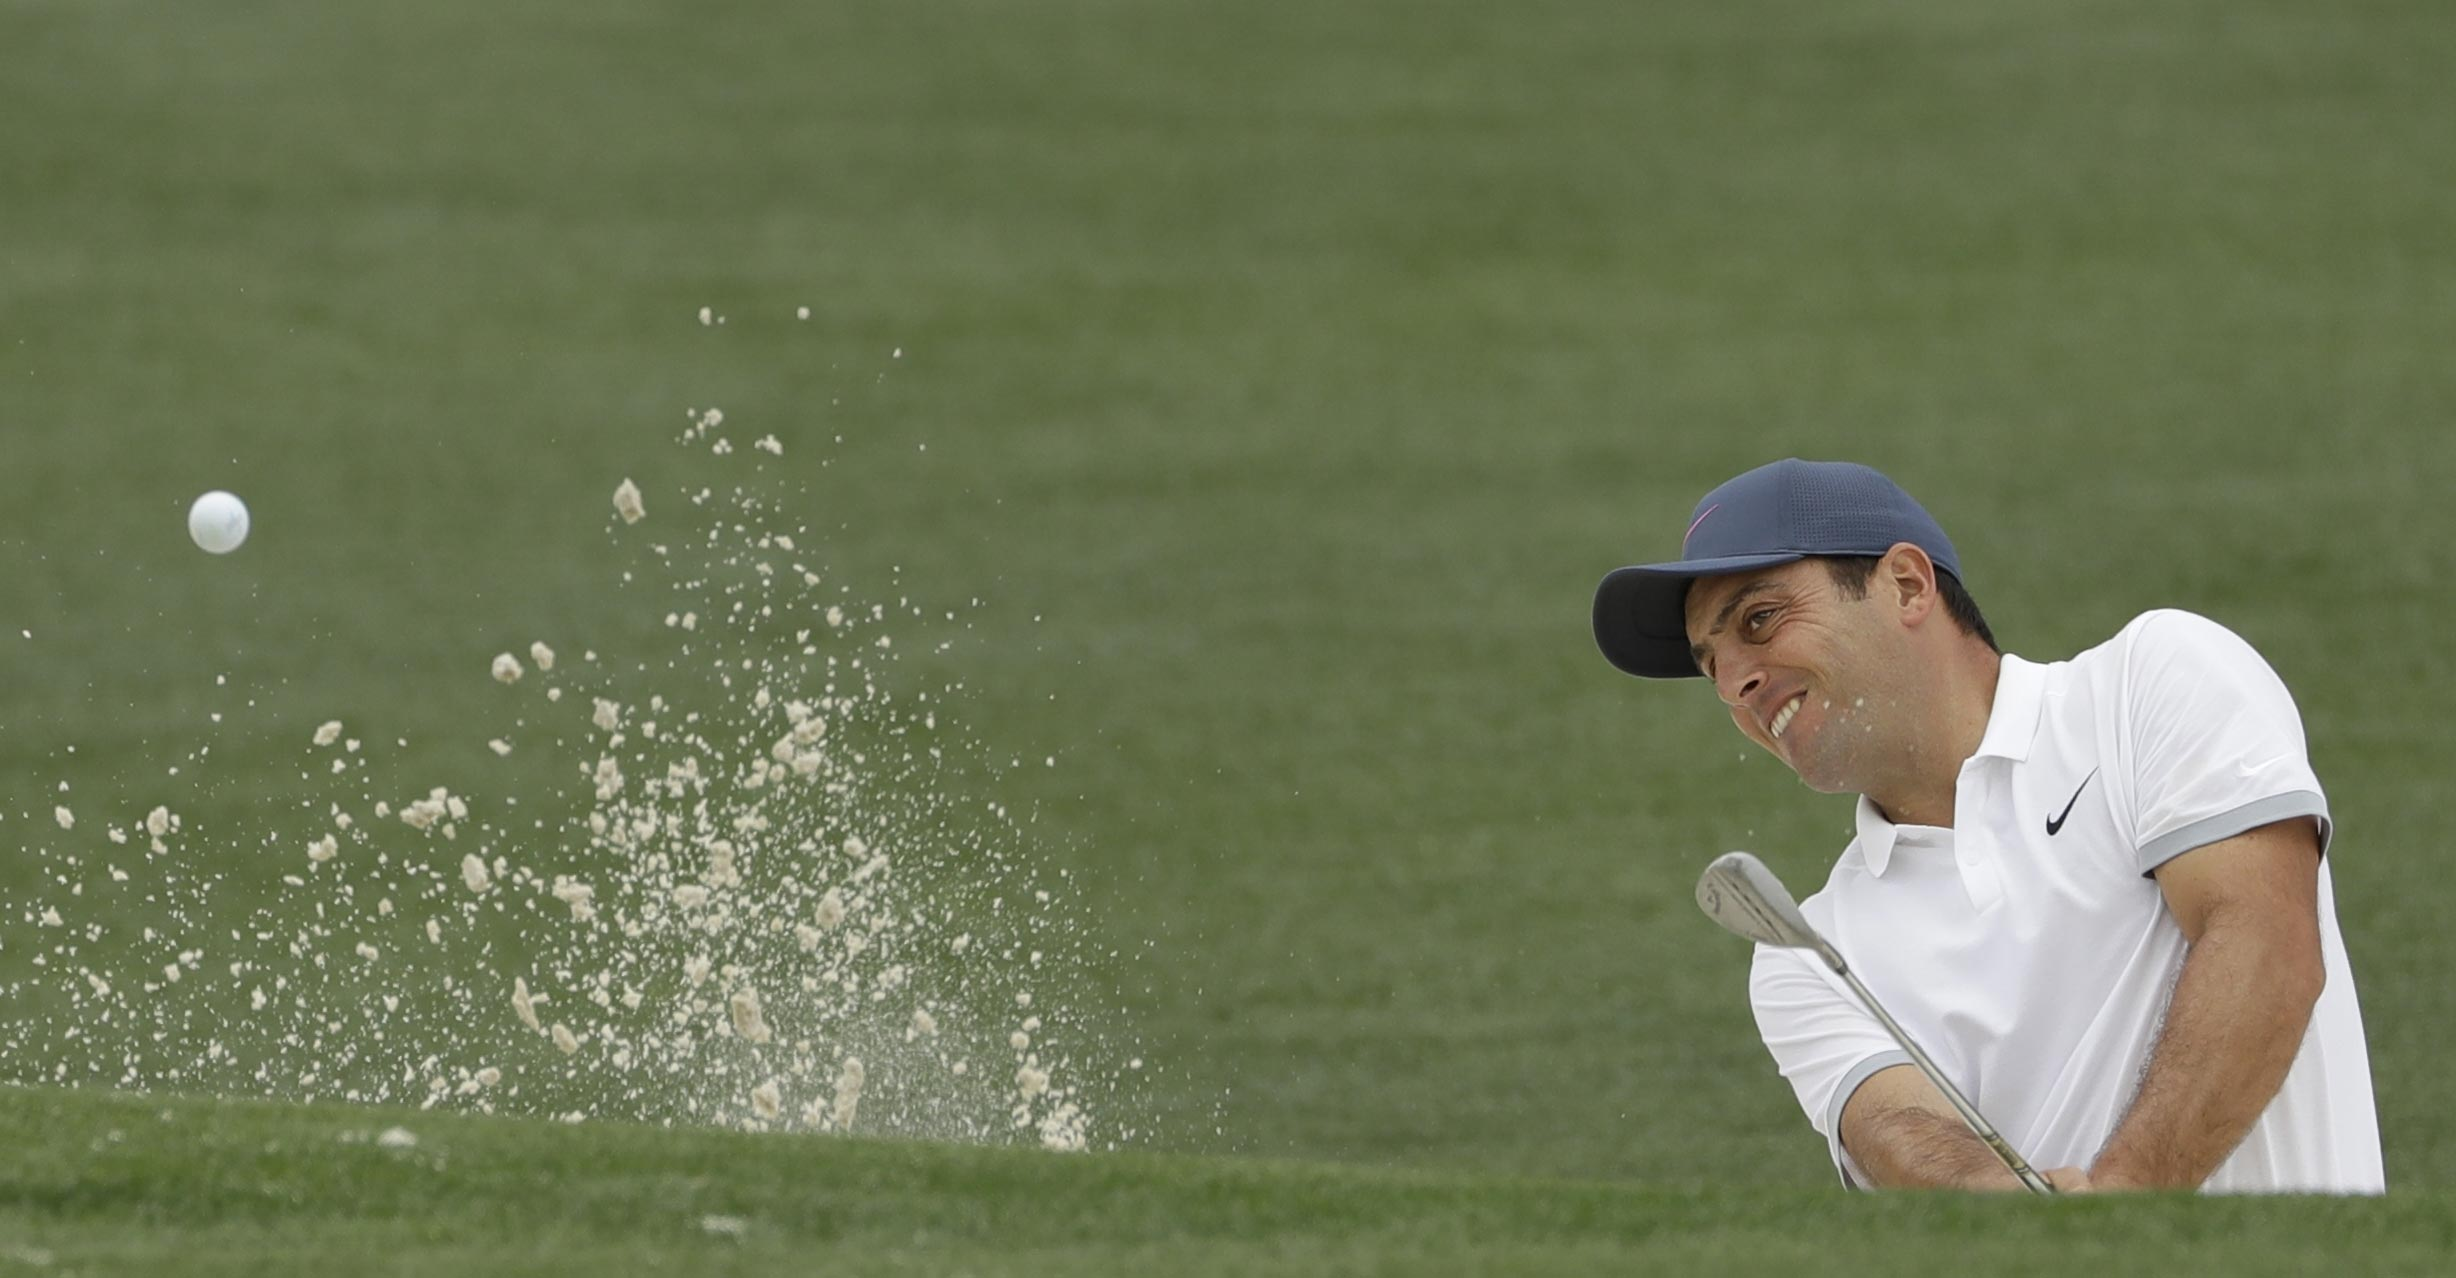 Francesco Molinari goes bogey-free in tough conditions at Wentworth for share of lead with Rory McIlroy